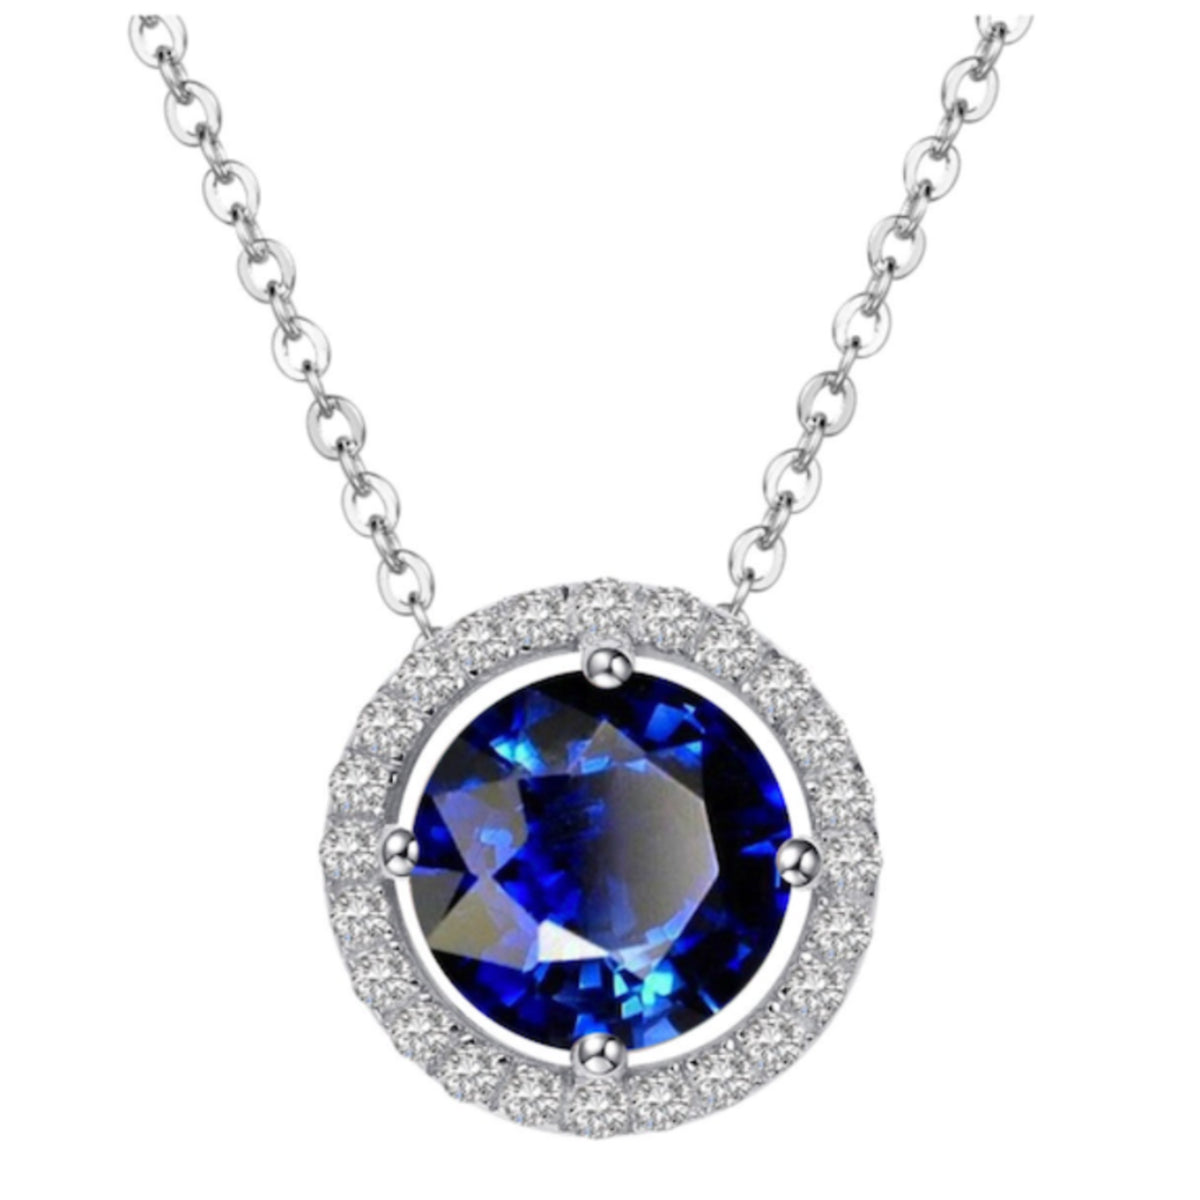 Royal Silver Sapphire Necklace